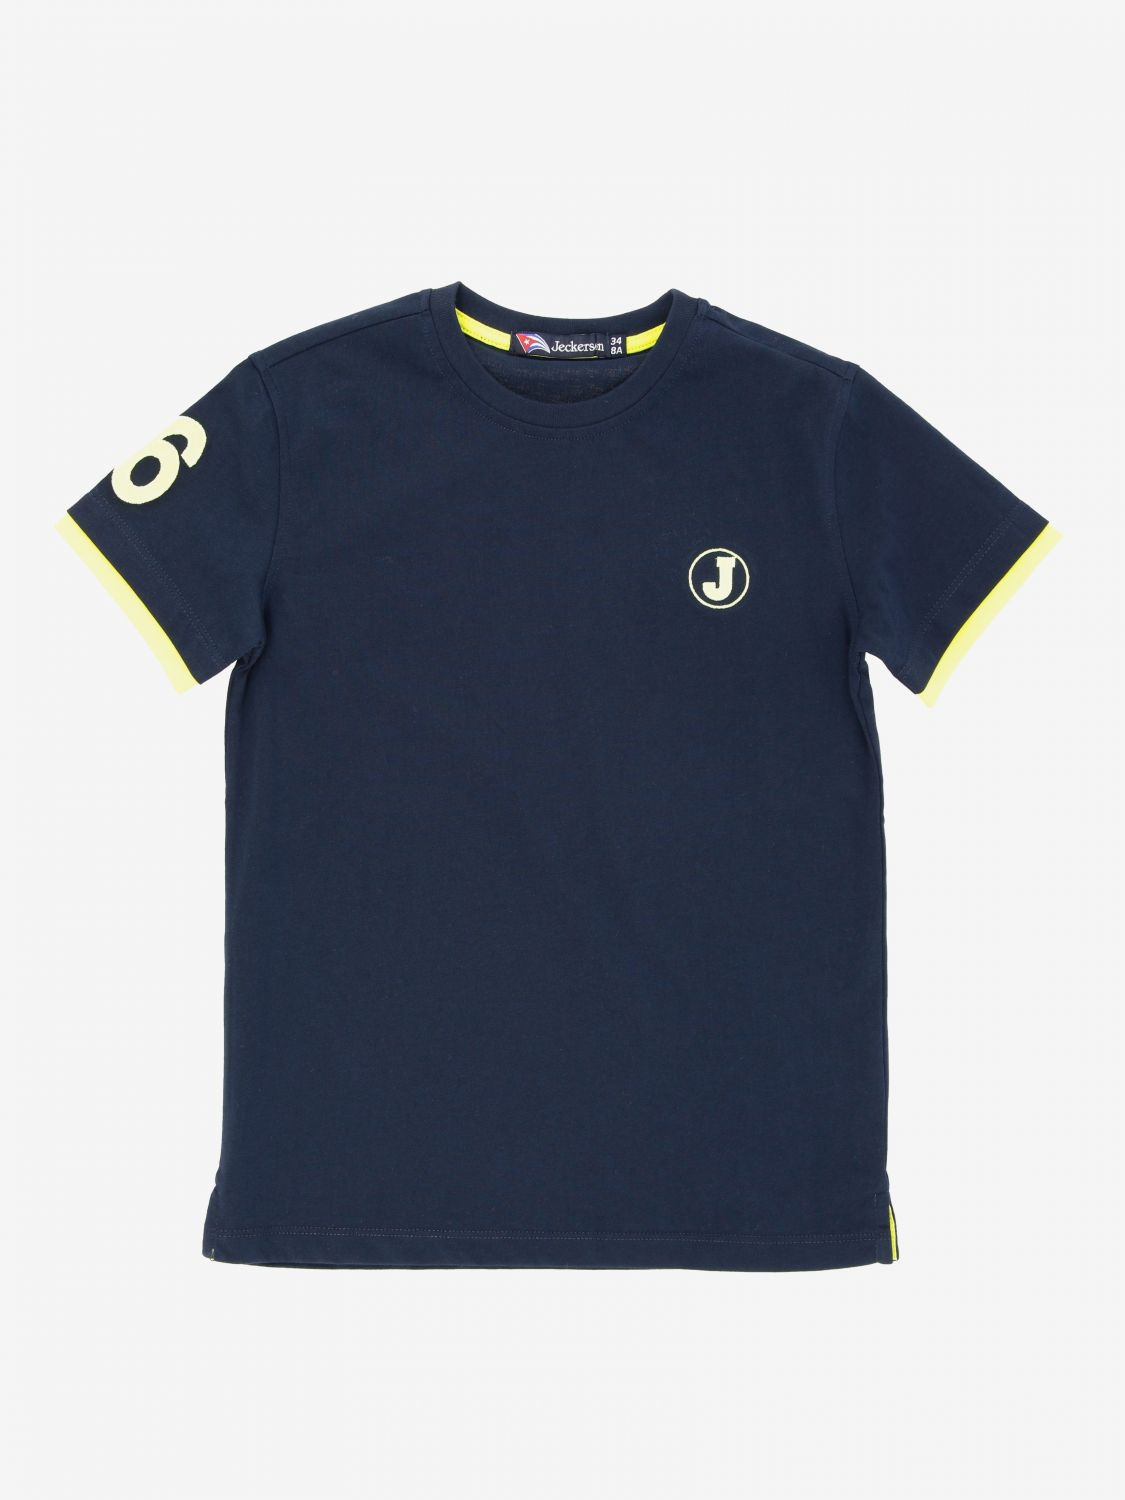 Jeckerson t-shirt with logo blue 1